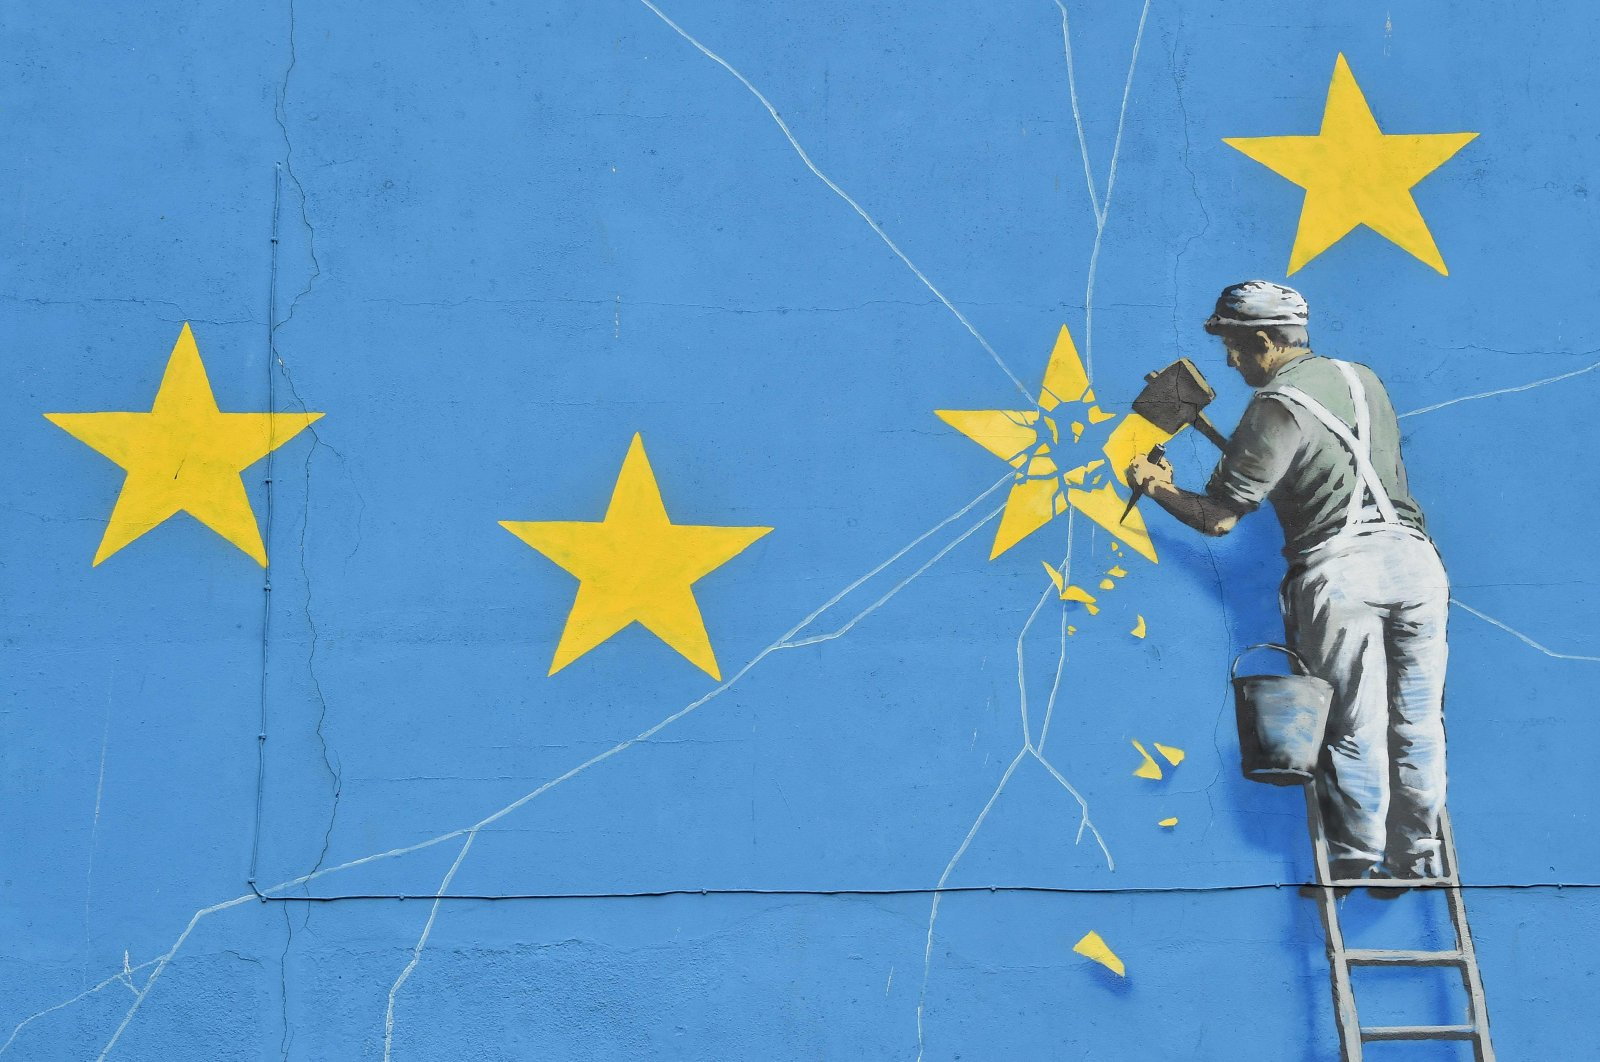 This file photo taken on January 7, 2019 shows a mural by British artist Banksy, depicting a workman chipping away at one of the stars on a European Union (EU) themed flag,in Dover, south east England. - Britain leaves the European Union on January 31, ending more than four decades of economic, political and legal integration with its closest neighbours. (Photo by Glyn KIRK / AFP)